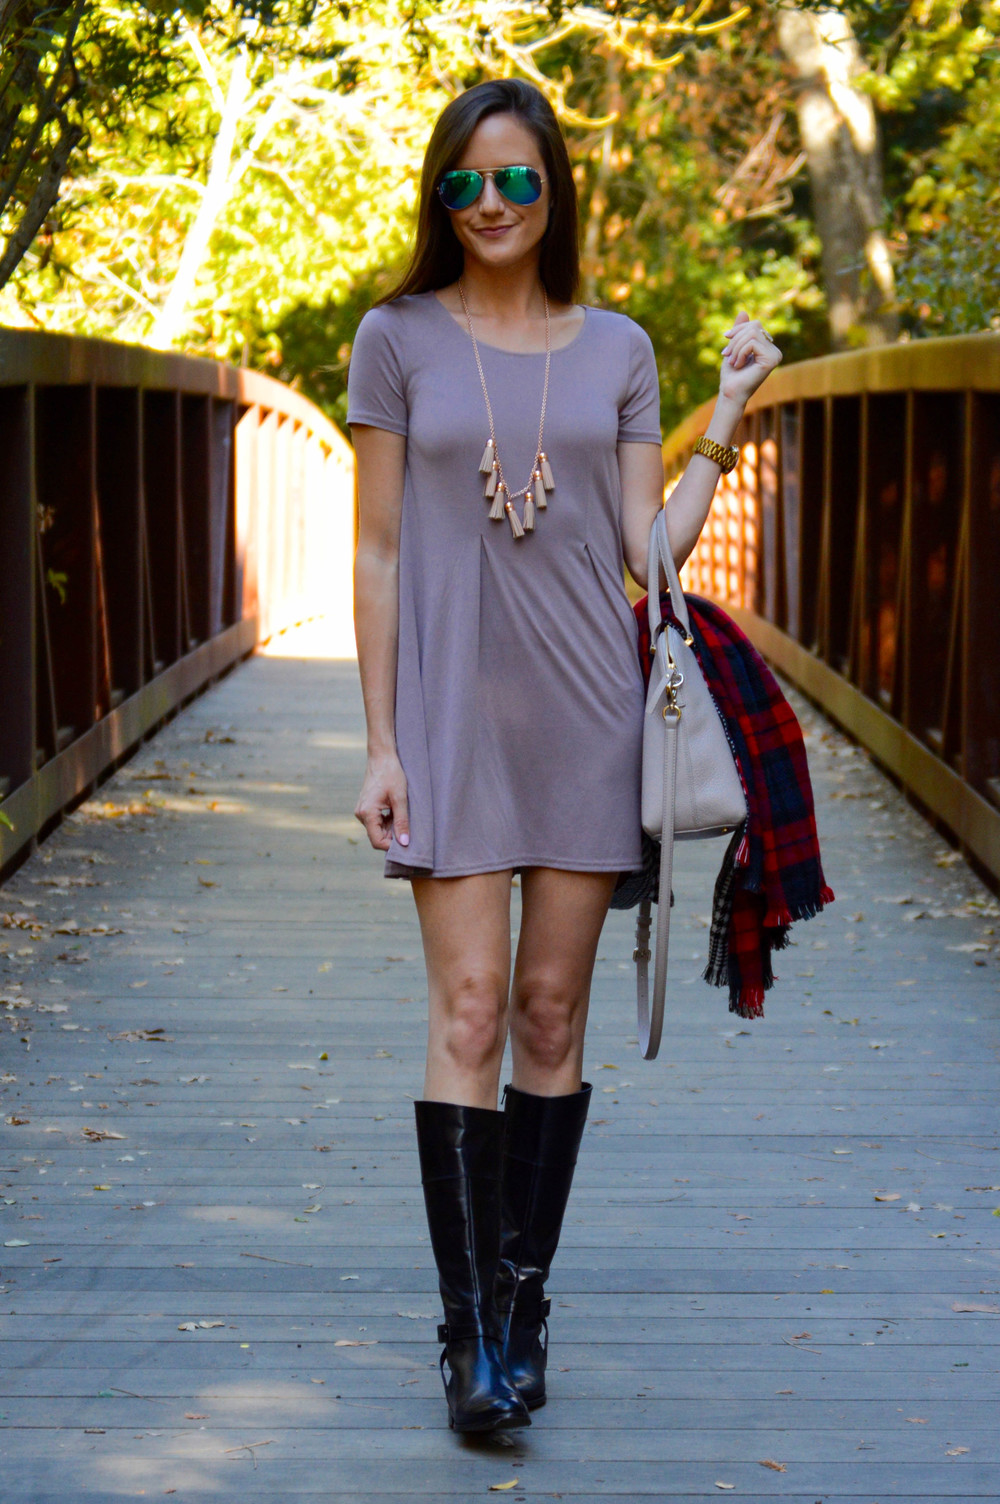 Shop the Look Below. Dress: Urban Outfitters (I own two colors and it's SO comfy1) Boots: c/o Skinnycalf Boots. Bag: Kate Spade. Scarf: I honestly can't remember, but similar here and here. Necklace: BaubleBar. Sunglasses: Off brand. Similar here and here.